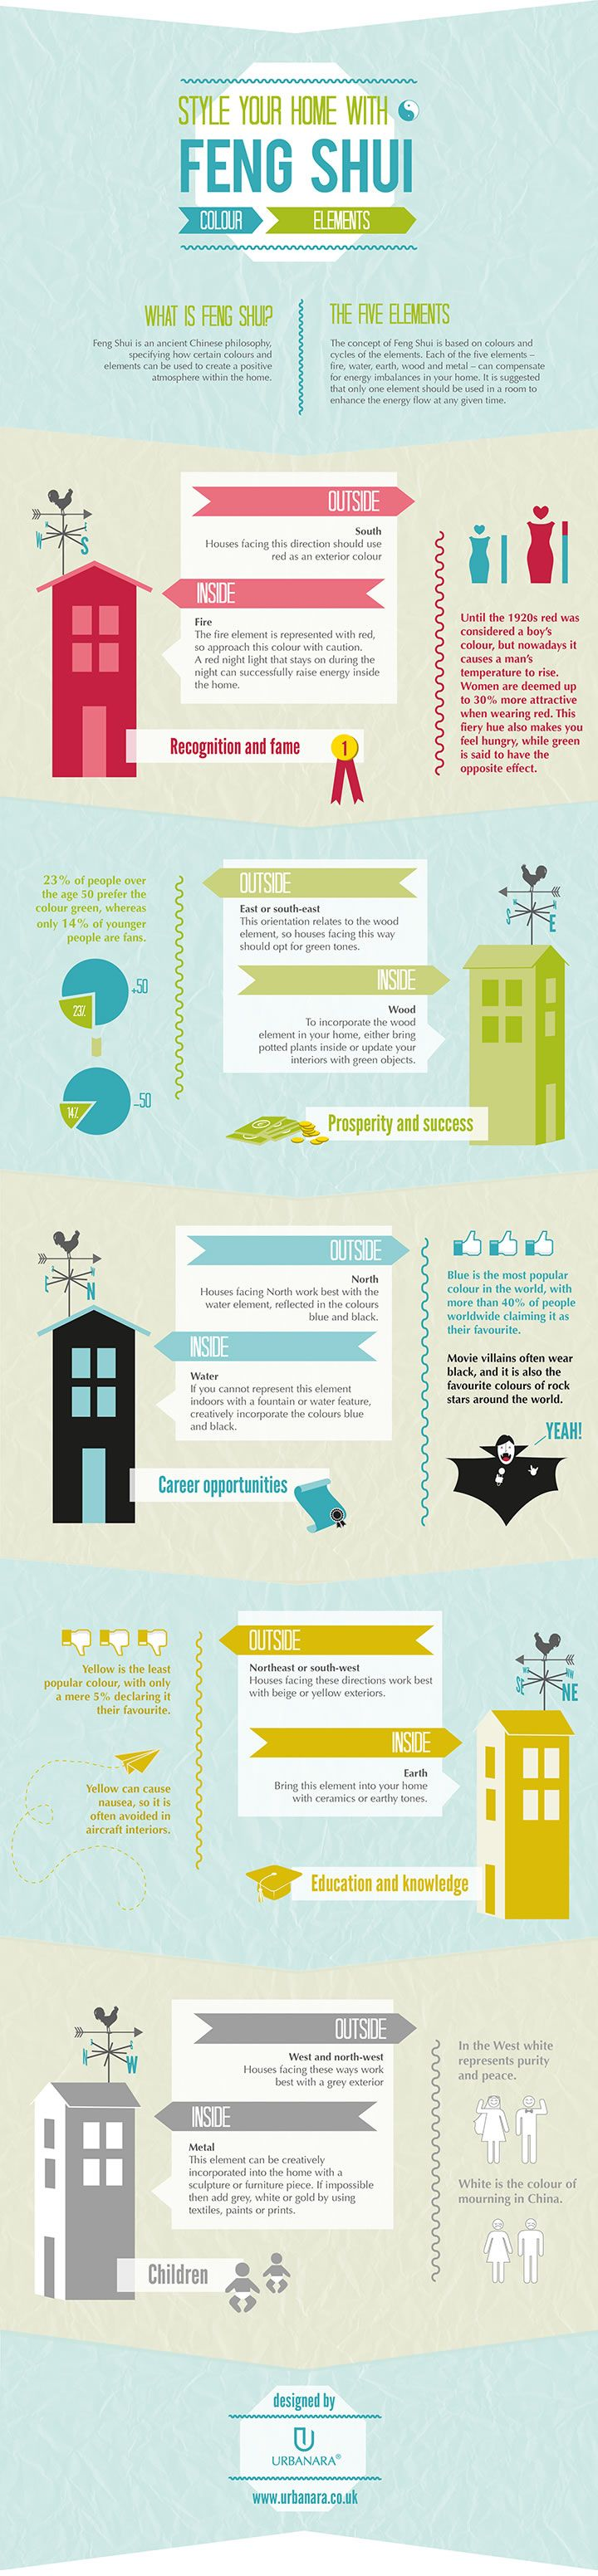 INFOGRAPHIC: STYLE YOUR HOME WITH FENG SHUI